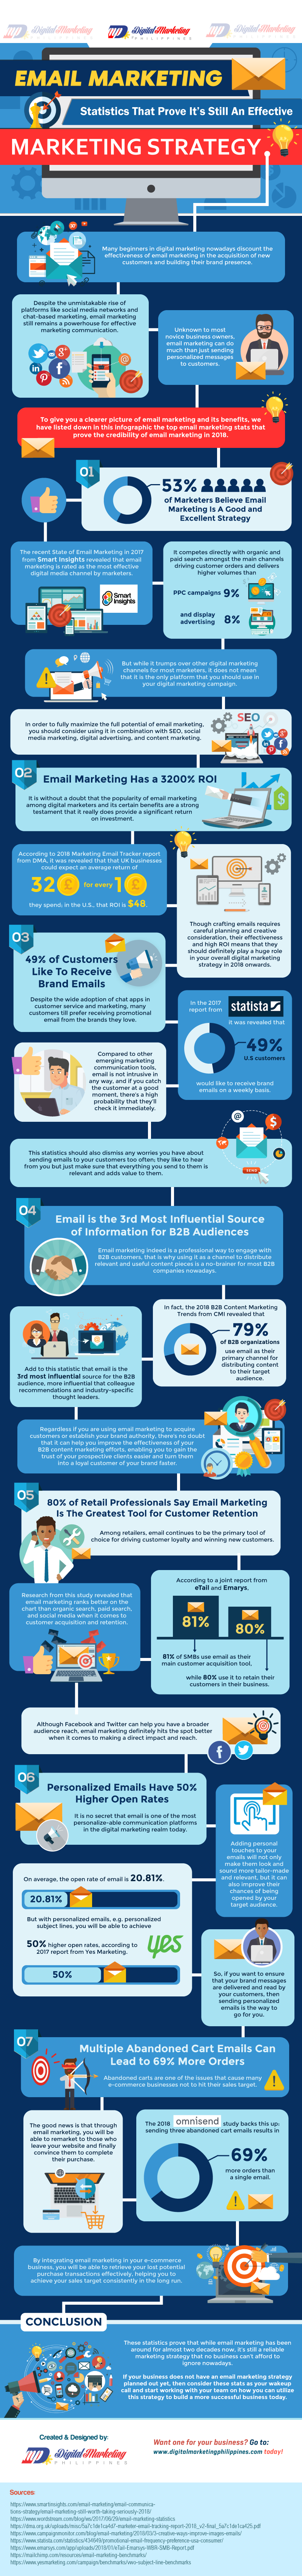 Email Marketing Statistics That Prove It's Still An Effective Marketing Strategy #infographic